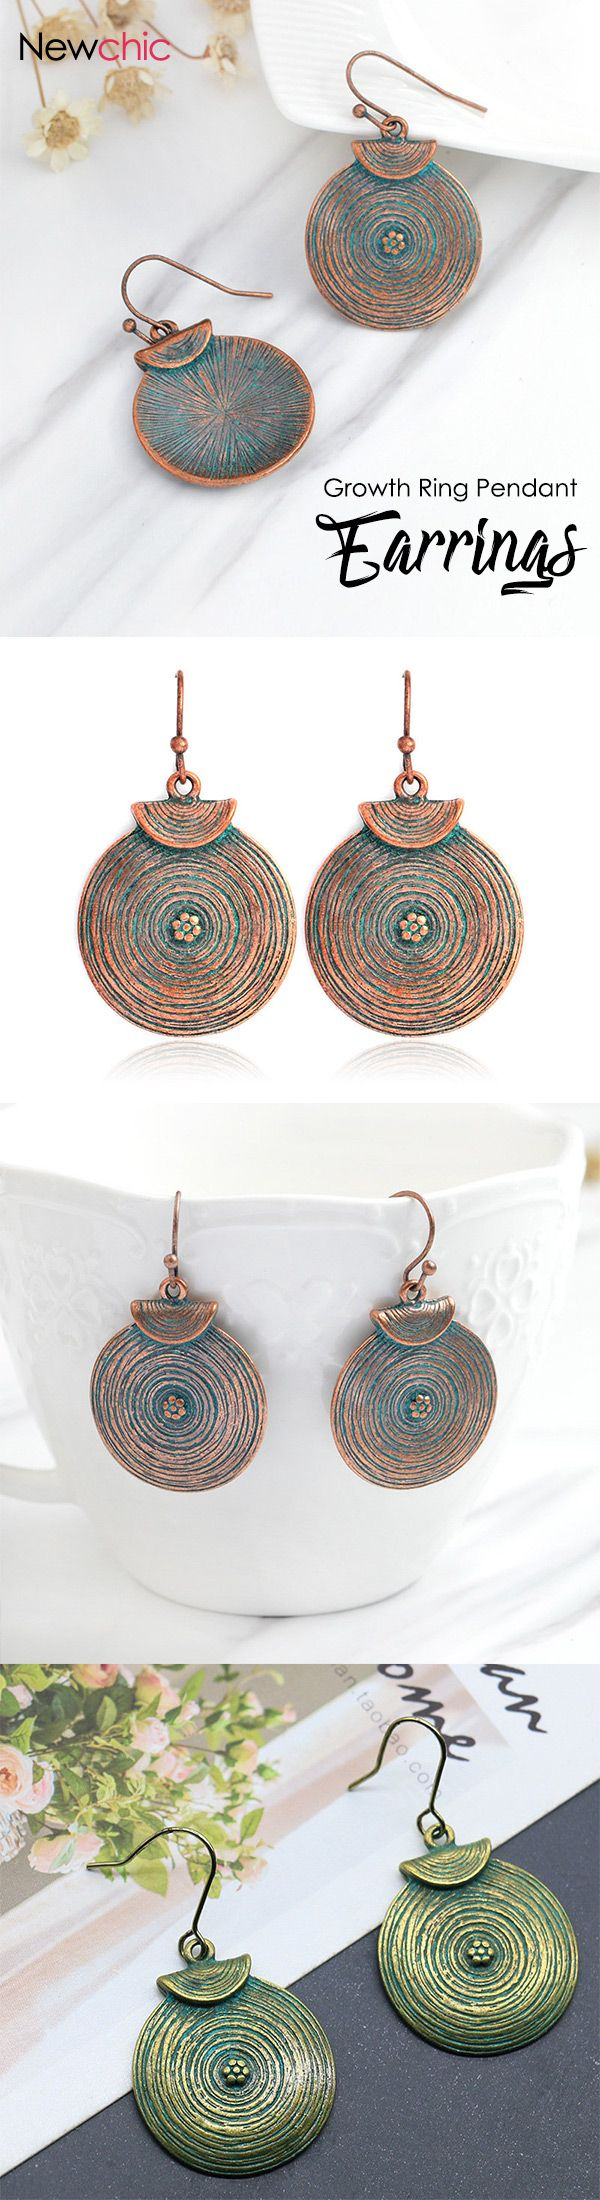 [Newchic Online Shopping] 50% OFF Vintage Growth Ring Drop Earrings